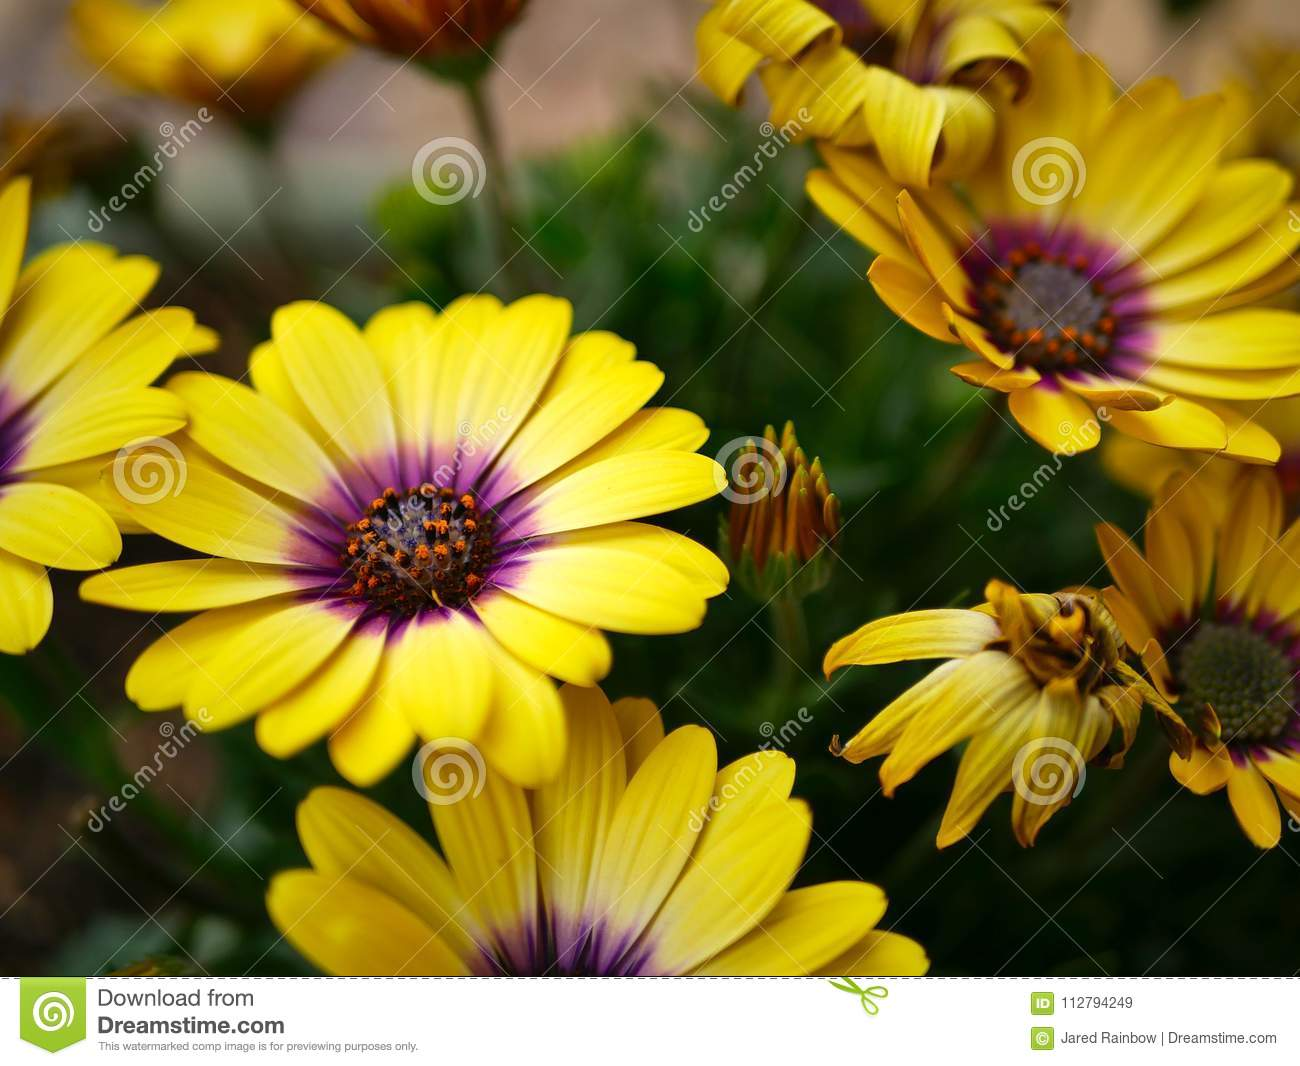 Vibrant Yellow Flowers With Pink Centers In A Butterfly Garden Santa